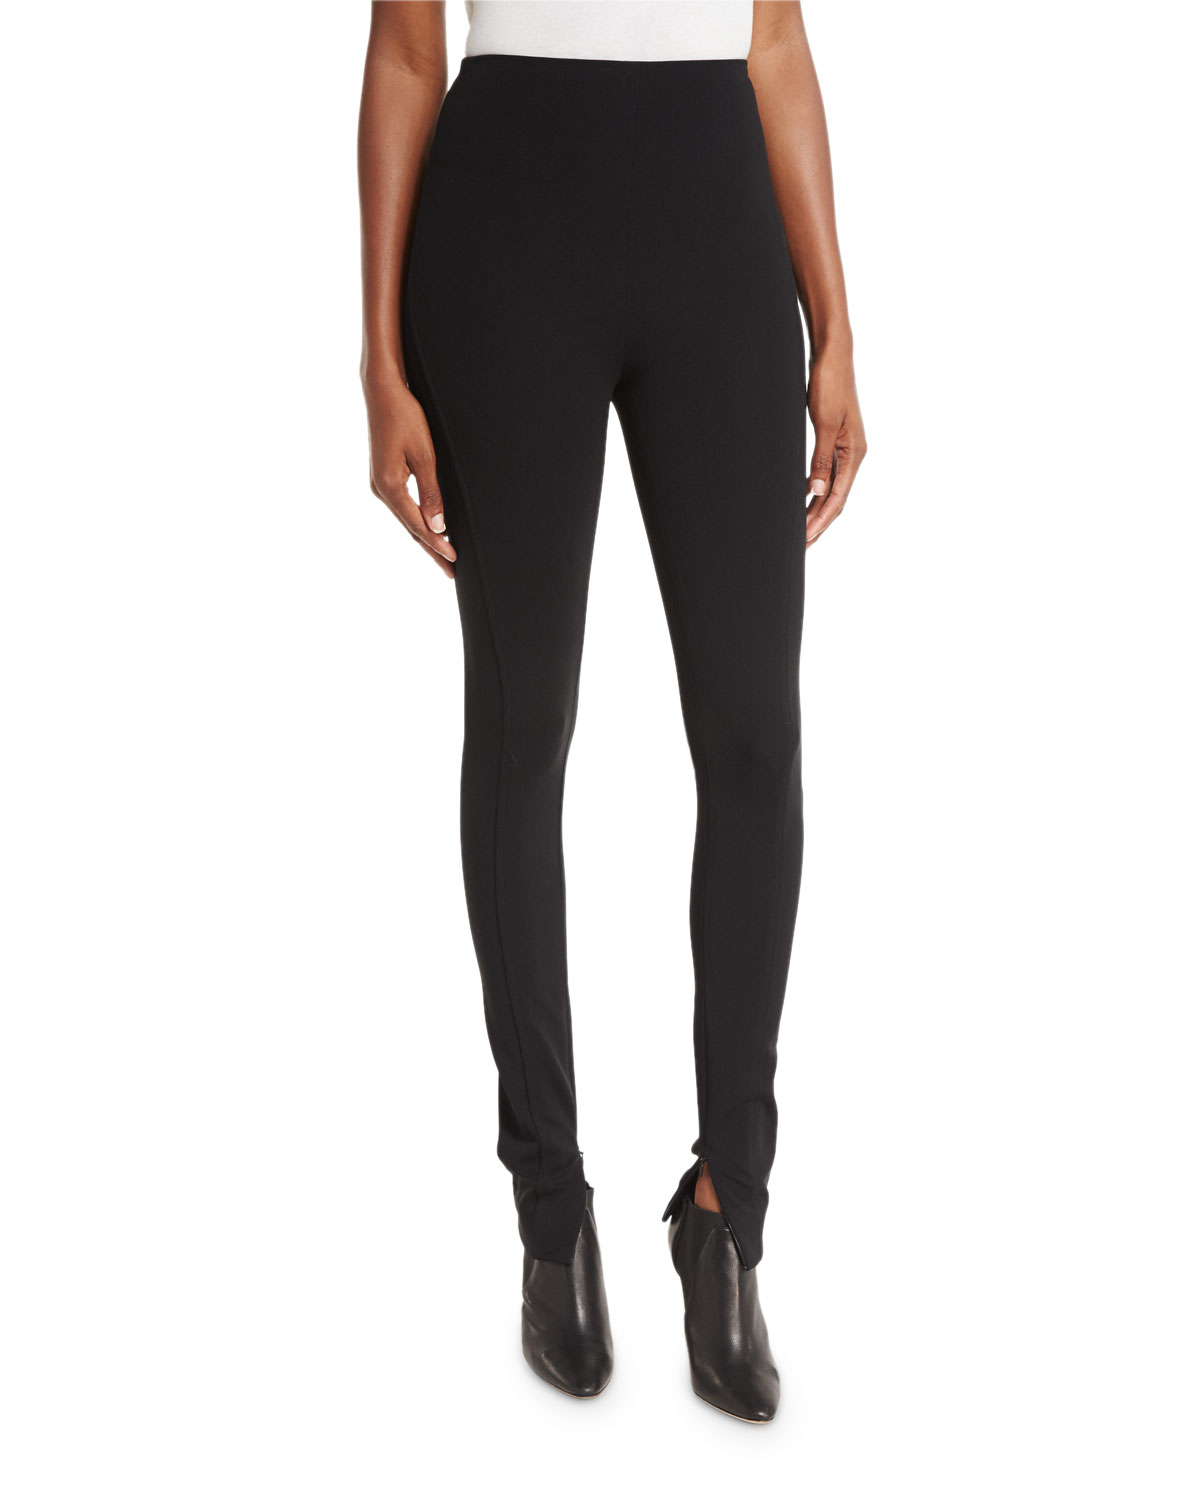 Leland High-Rise Leggings, Black